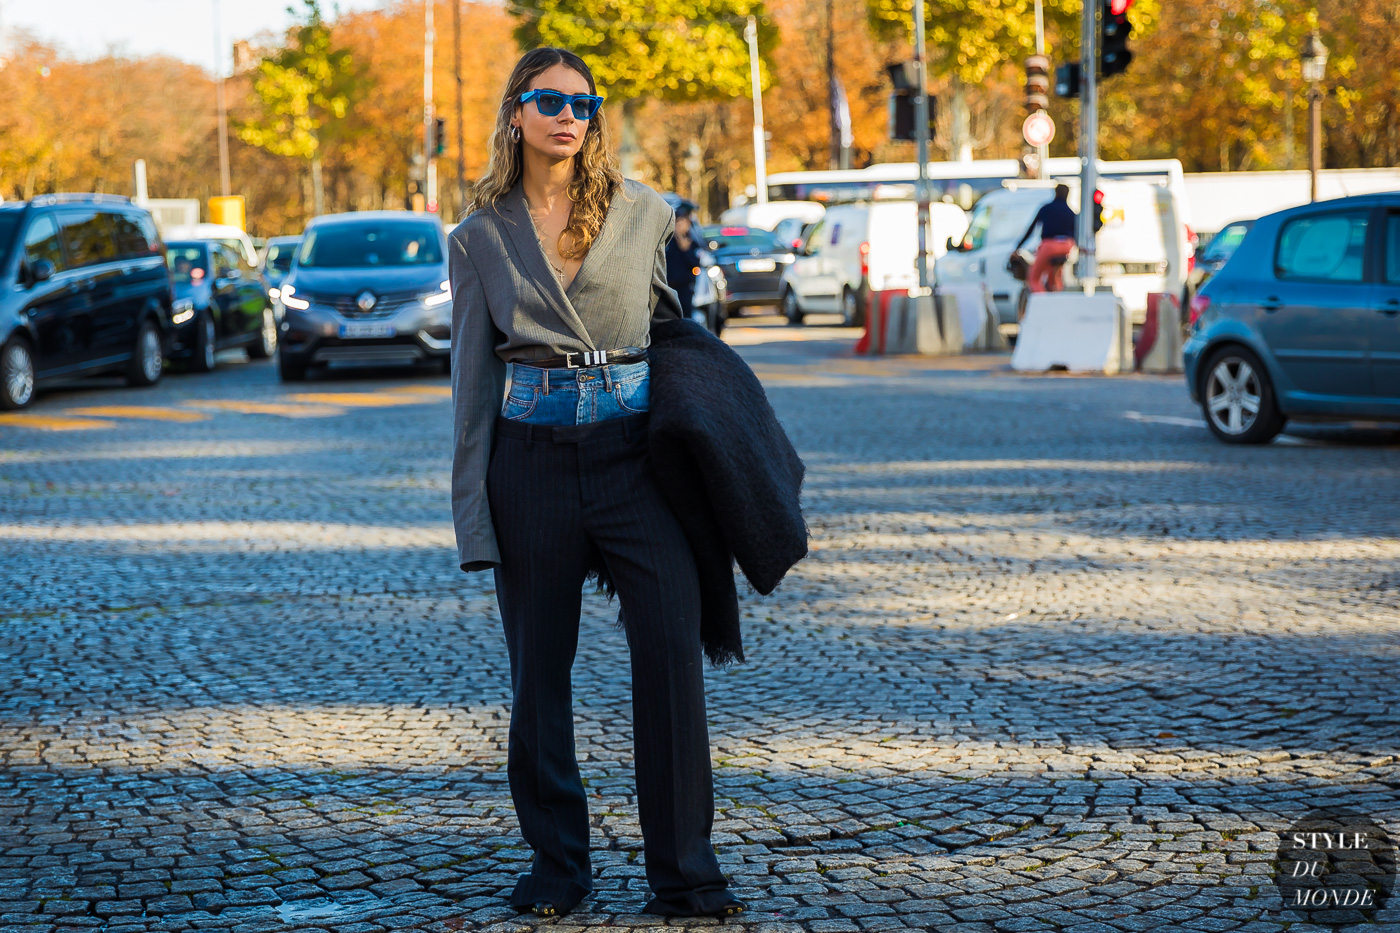 Irina Lakicevic by STYLEDUMONDE Street Style Fashion Photography_48A2515